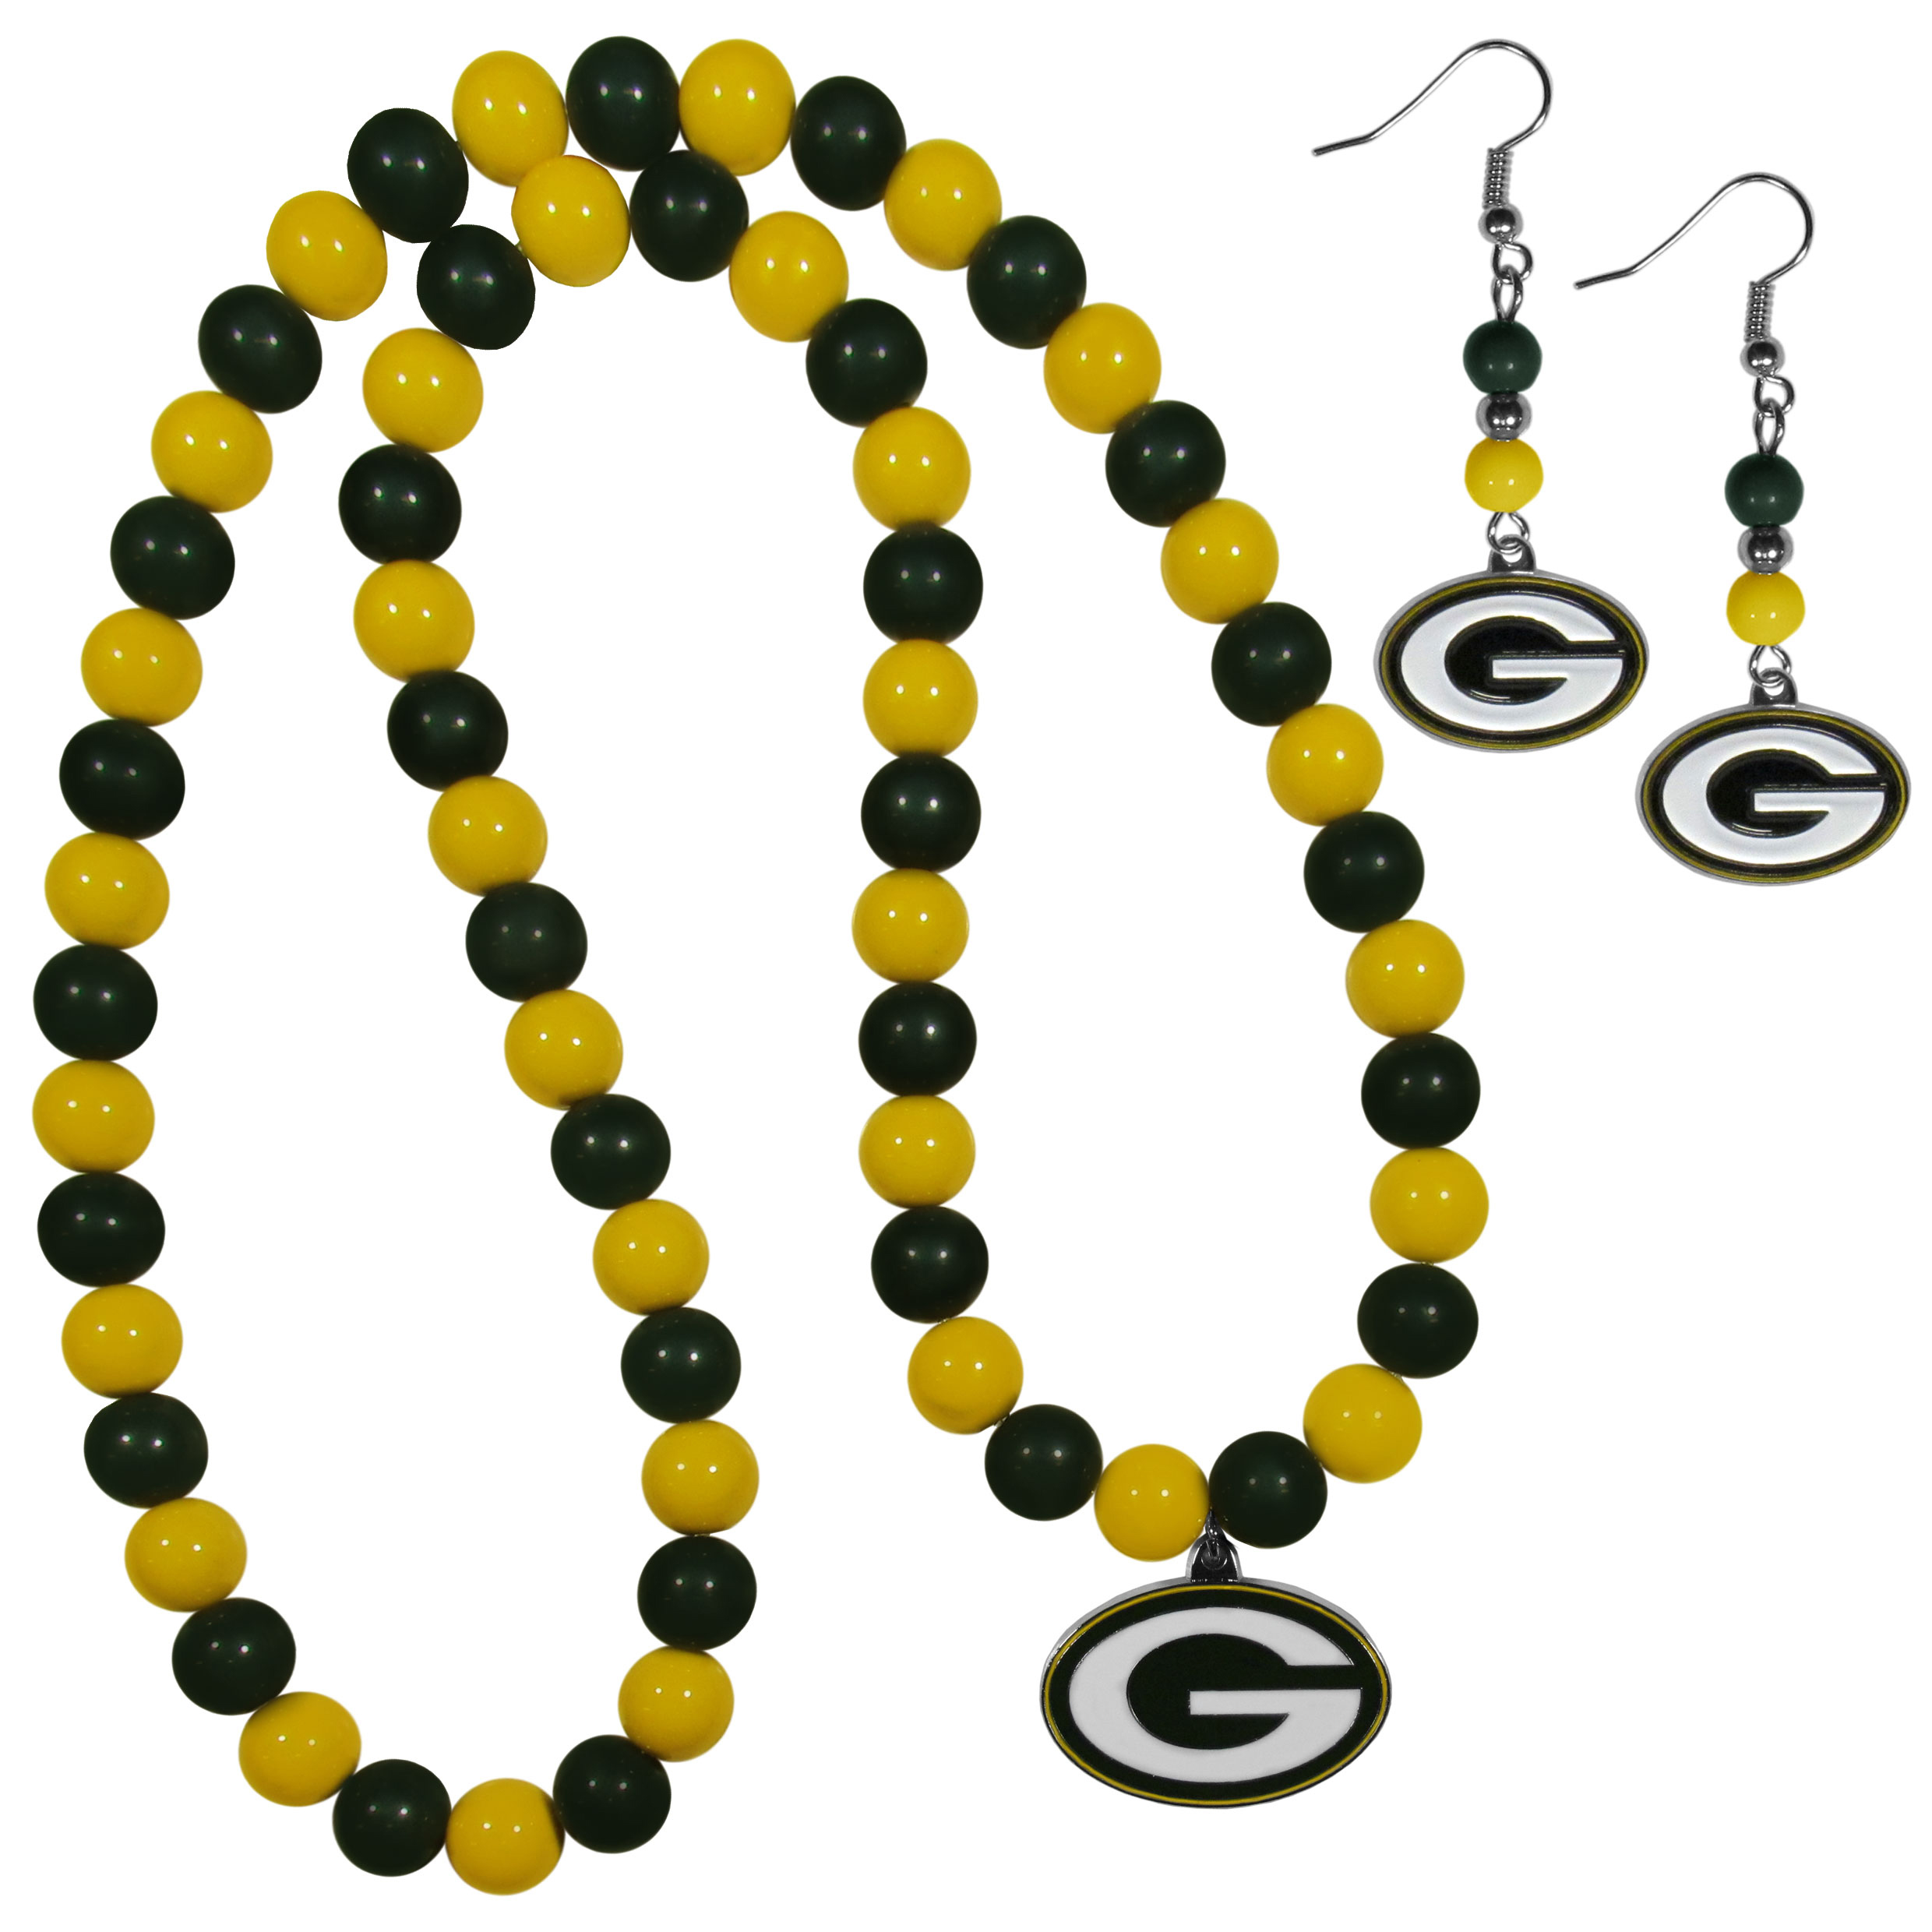 Green Bay Packers Fan Bead Earrings and Necklace Set - These fun and colorful Green Bay Packers fan bead jewelry pieces are an eyecatching way to show off your team spirit. The earrings feature hypoallergenic, nickel free fishhook post and 2 team colored beads with a beautifully carved team charm to finish this attractive dangle look. The mathcing bracelet has alternating team colored beads on a stretch cord and features a matching team charm.